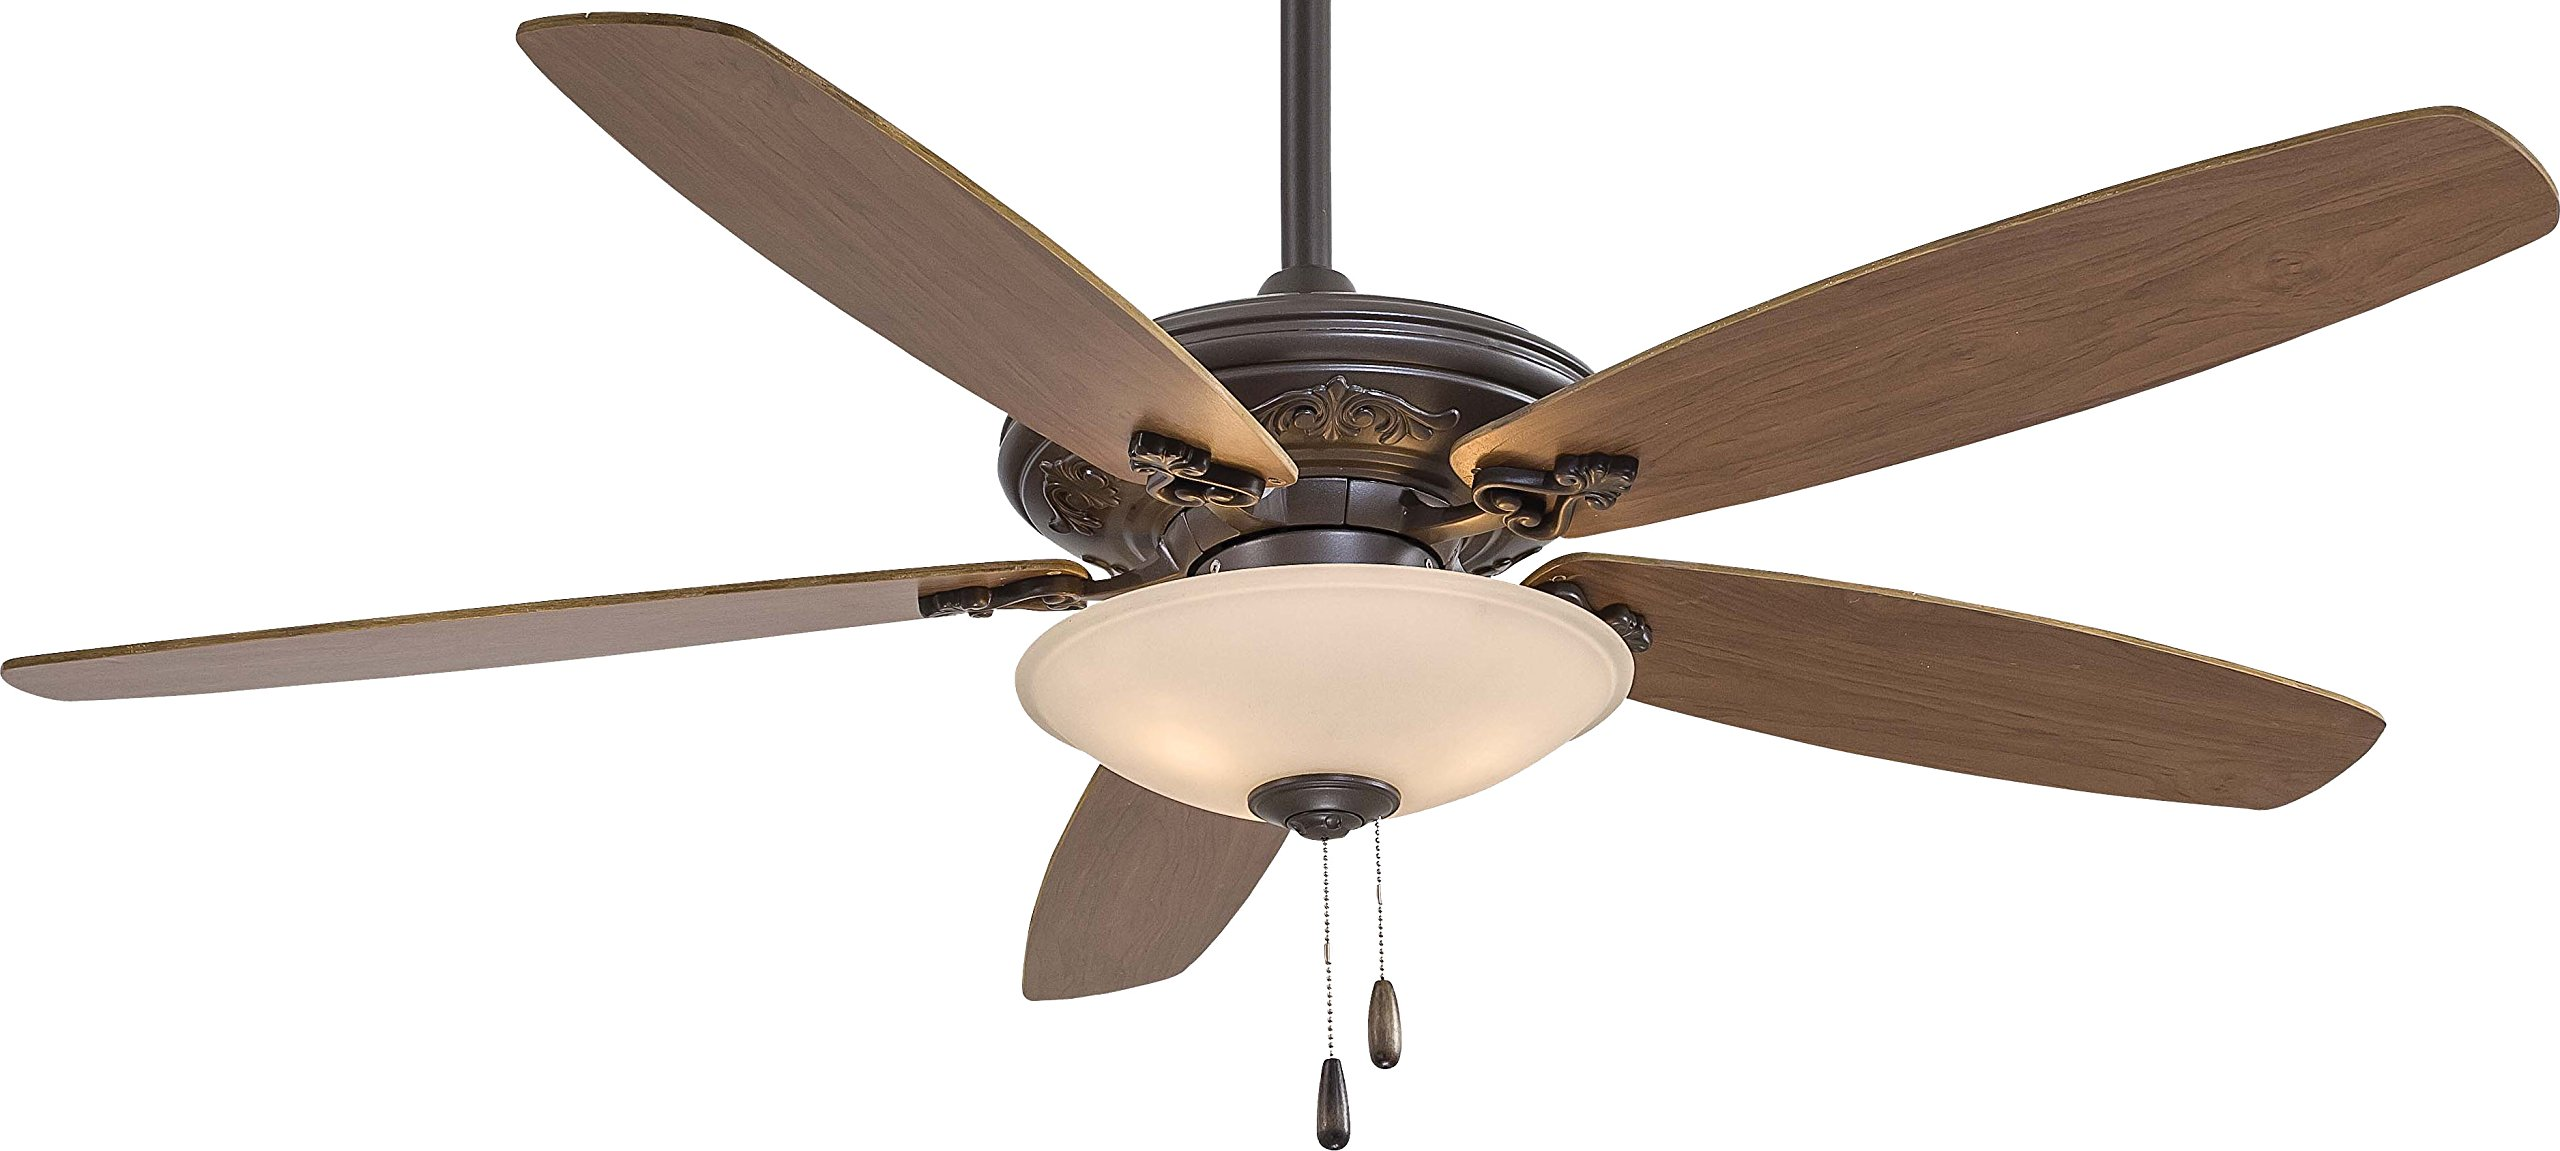 "Minka-Aire F622-ORB/TS, Traditional Mojo Oil-Rubbed Bronze 52"" Ceiling Fan with Light"